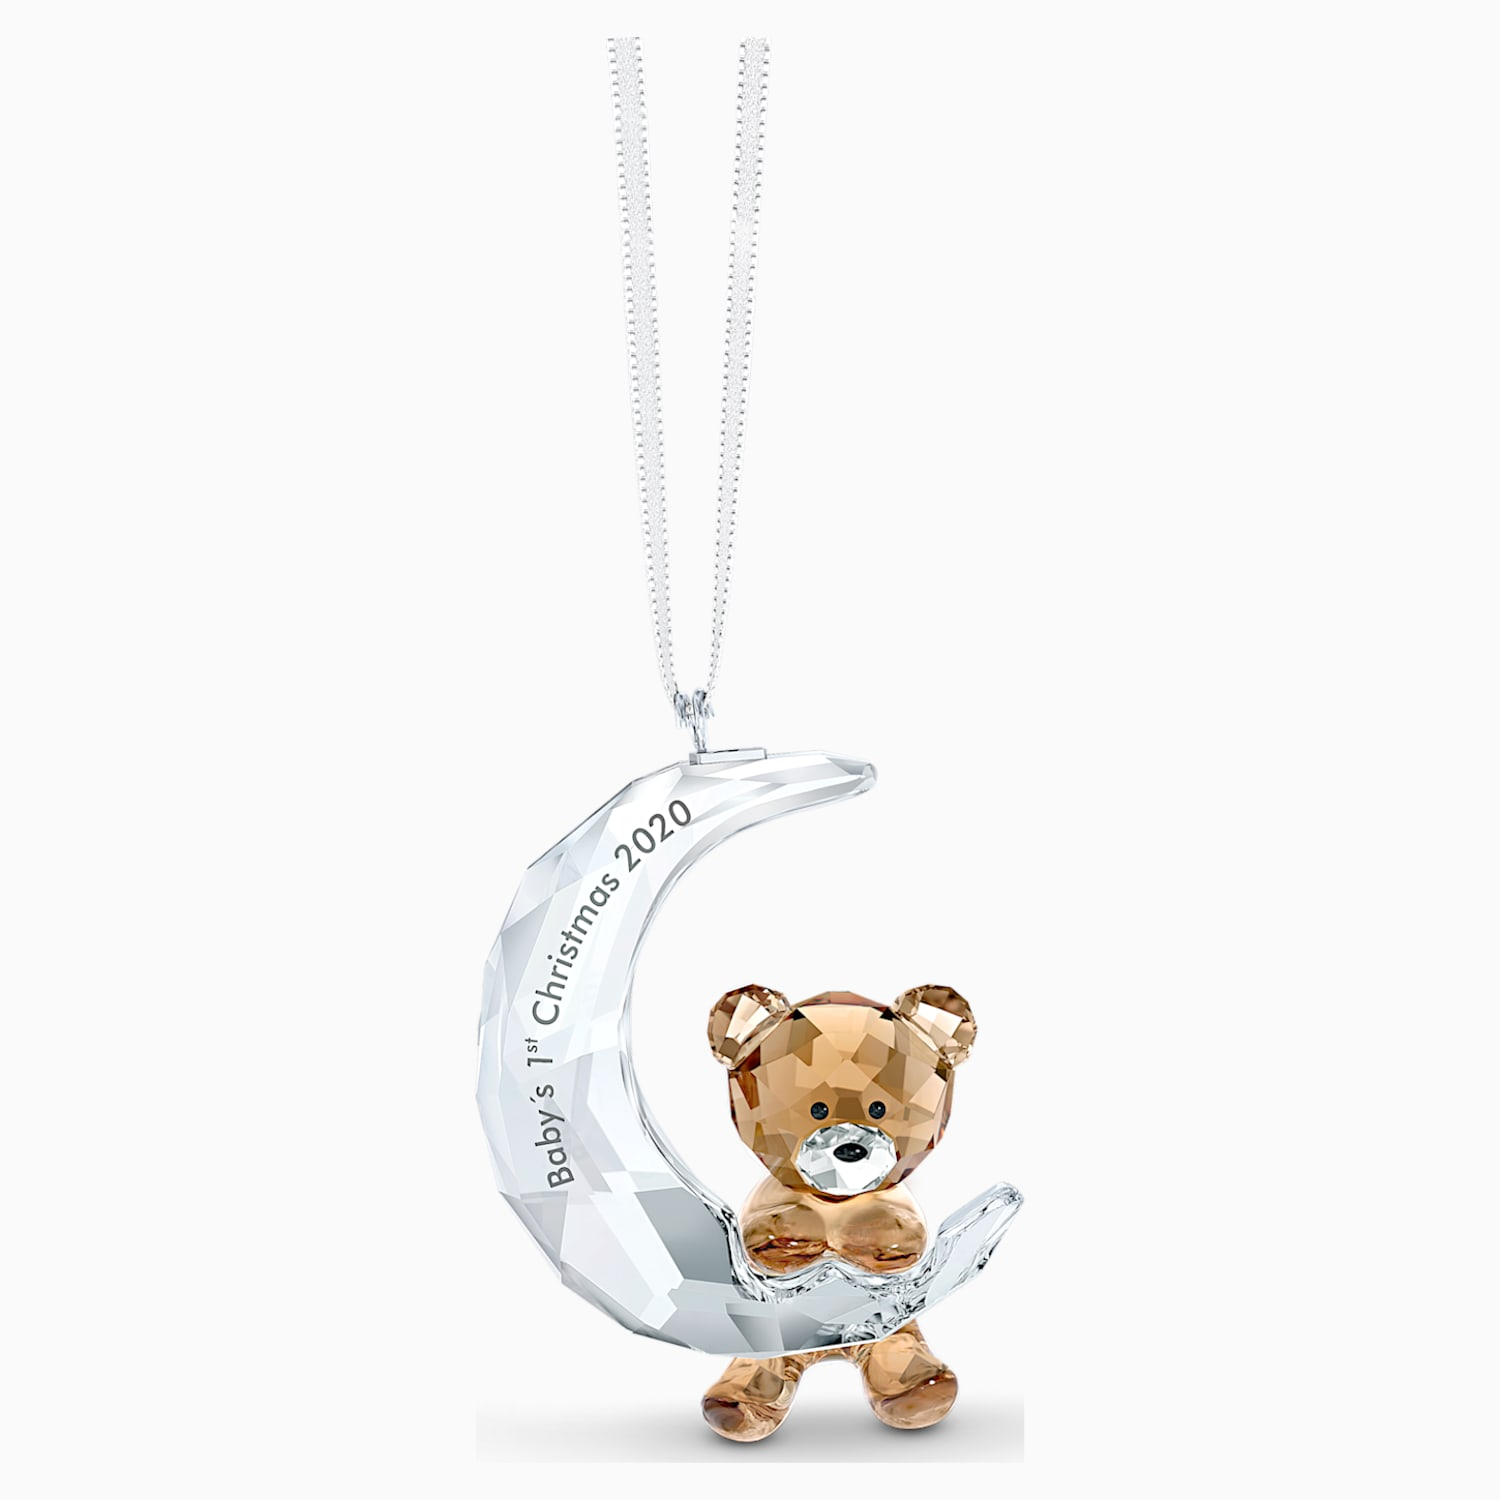 Our First Christmas Picture Ornament 2020 Baby's 1st Christmas Ornament 2020 | Swarovski.com